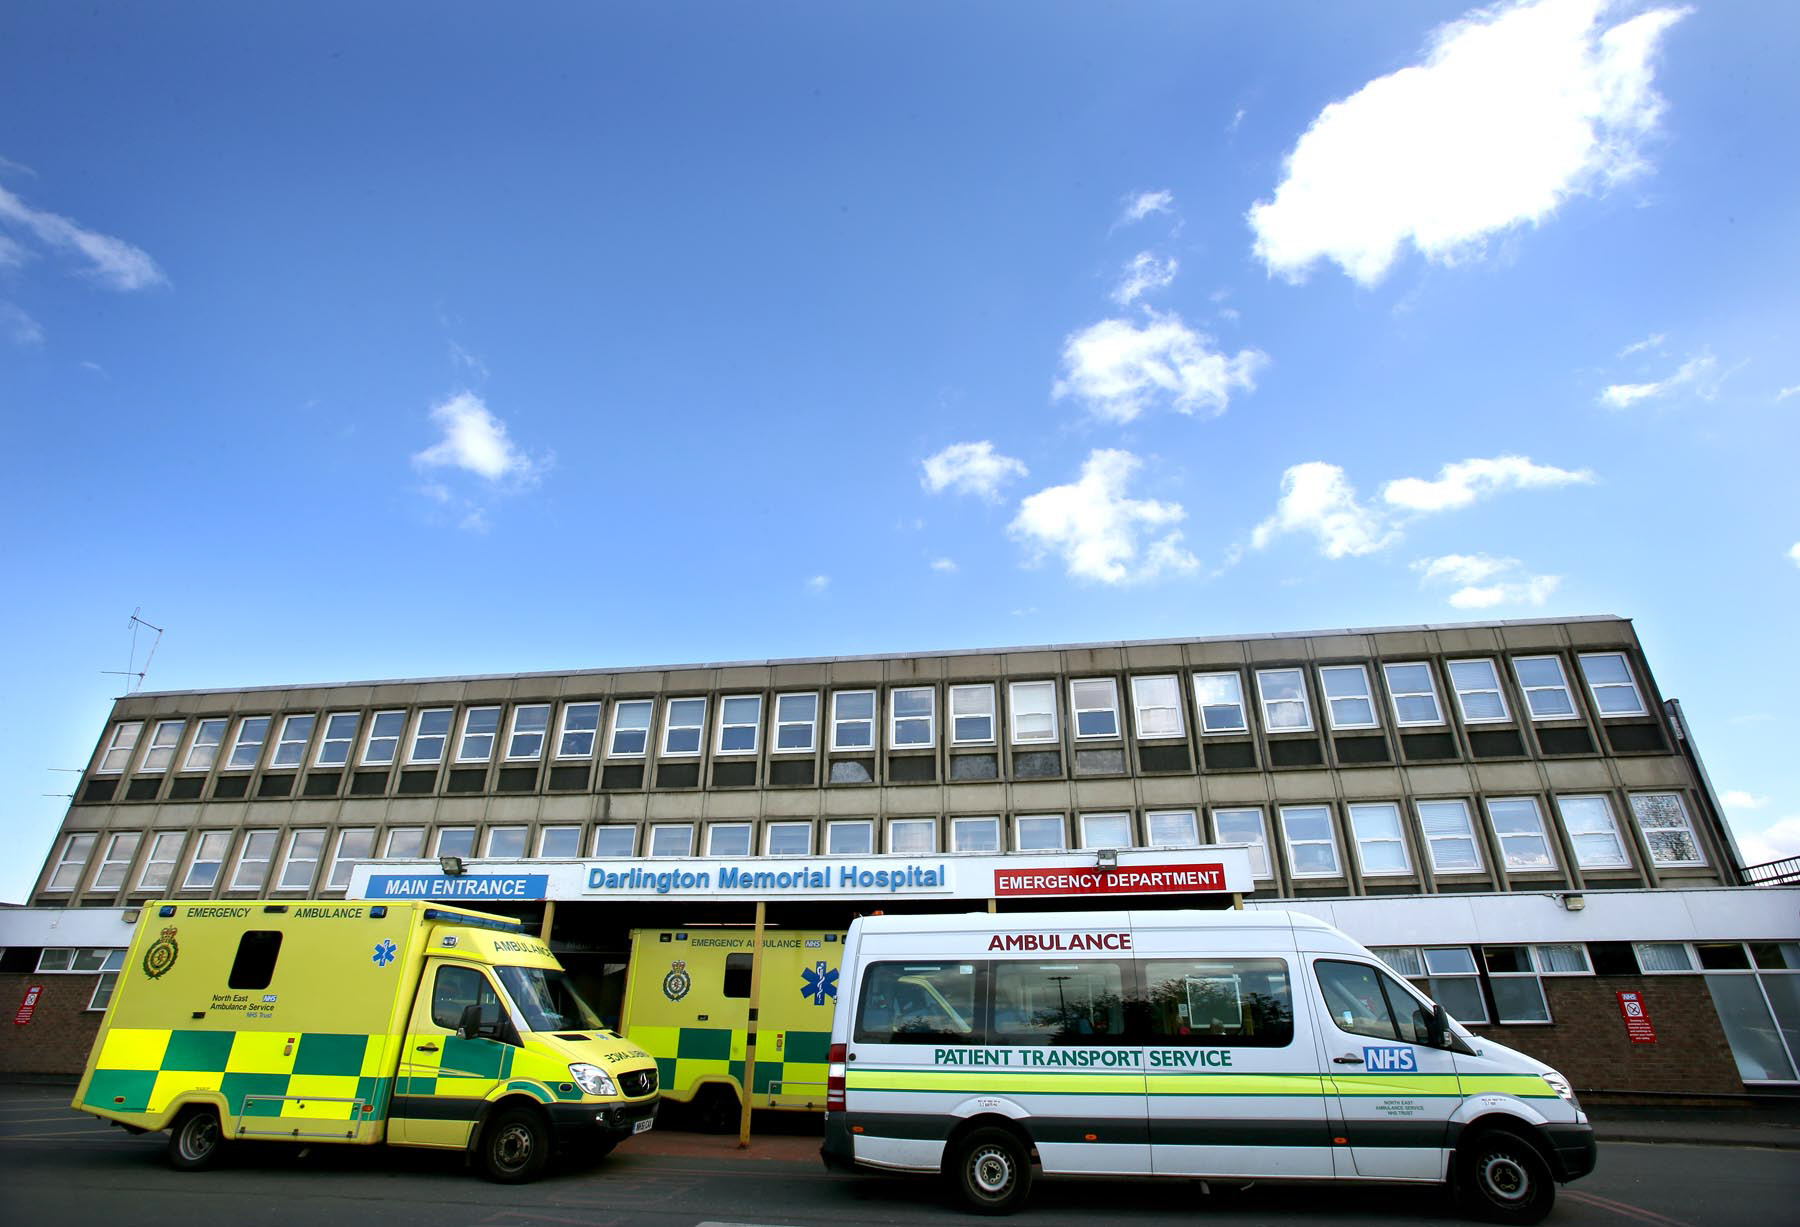 CLOSURE CLAIMS: Darlington Memorial Hospital Accident & Emergency